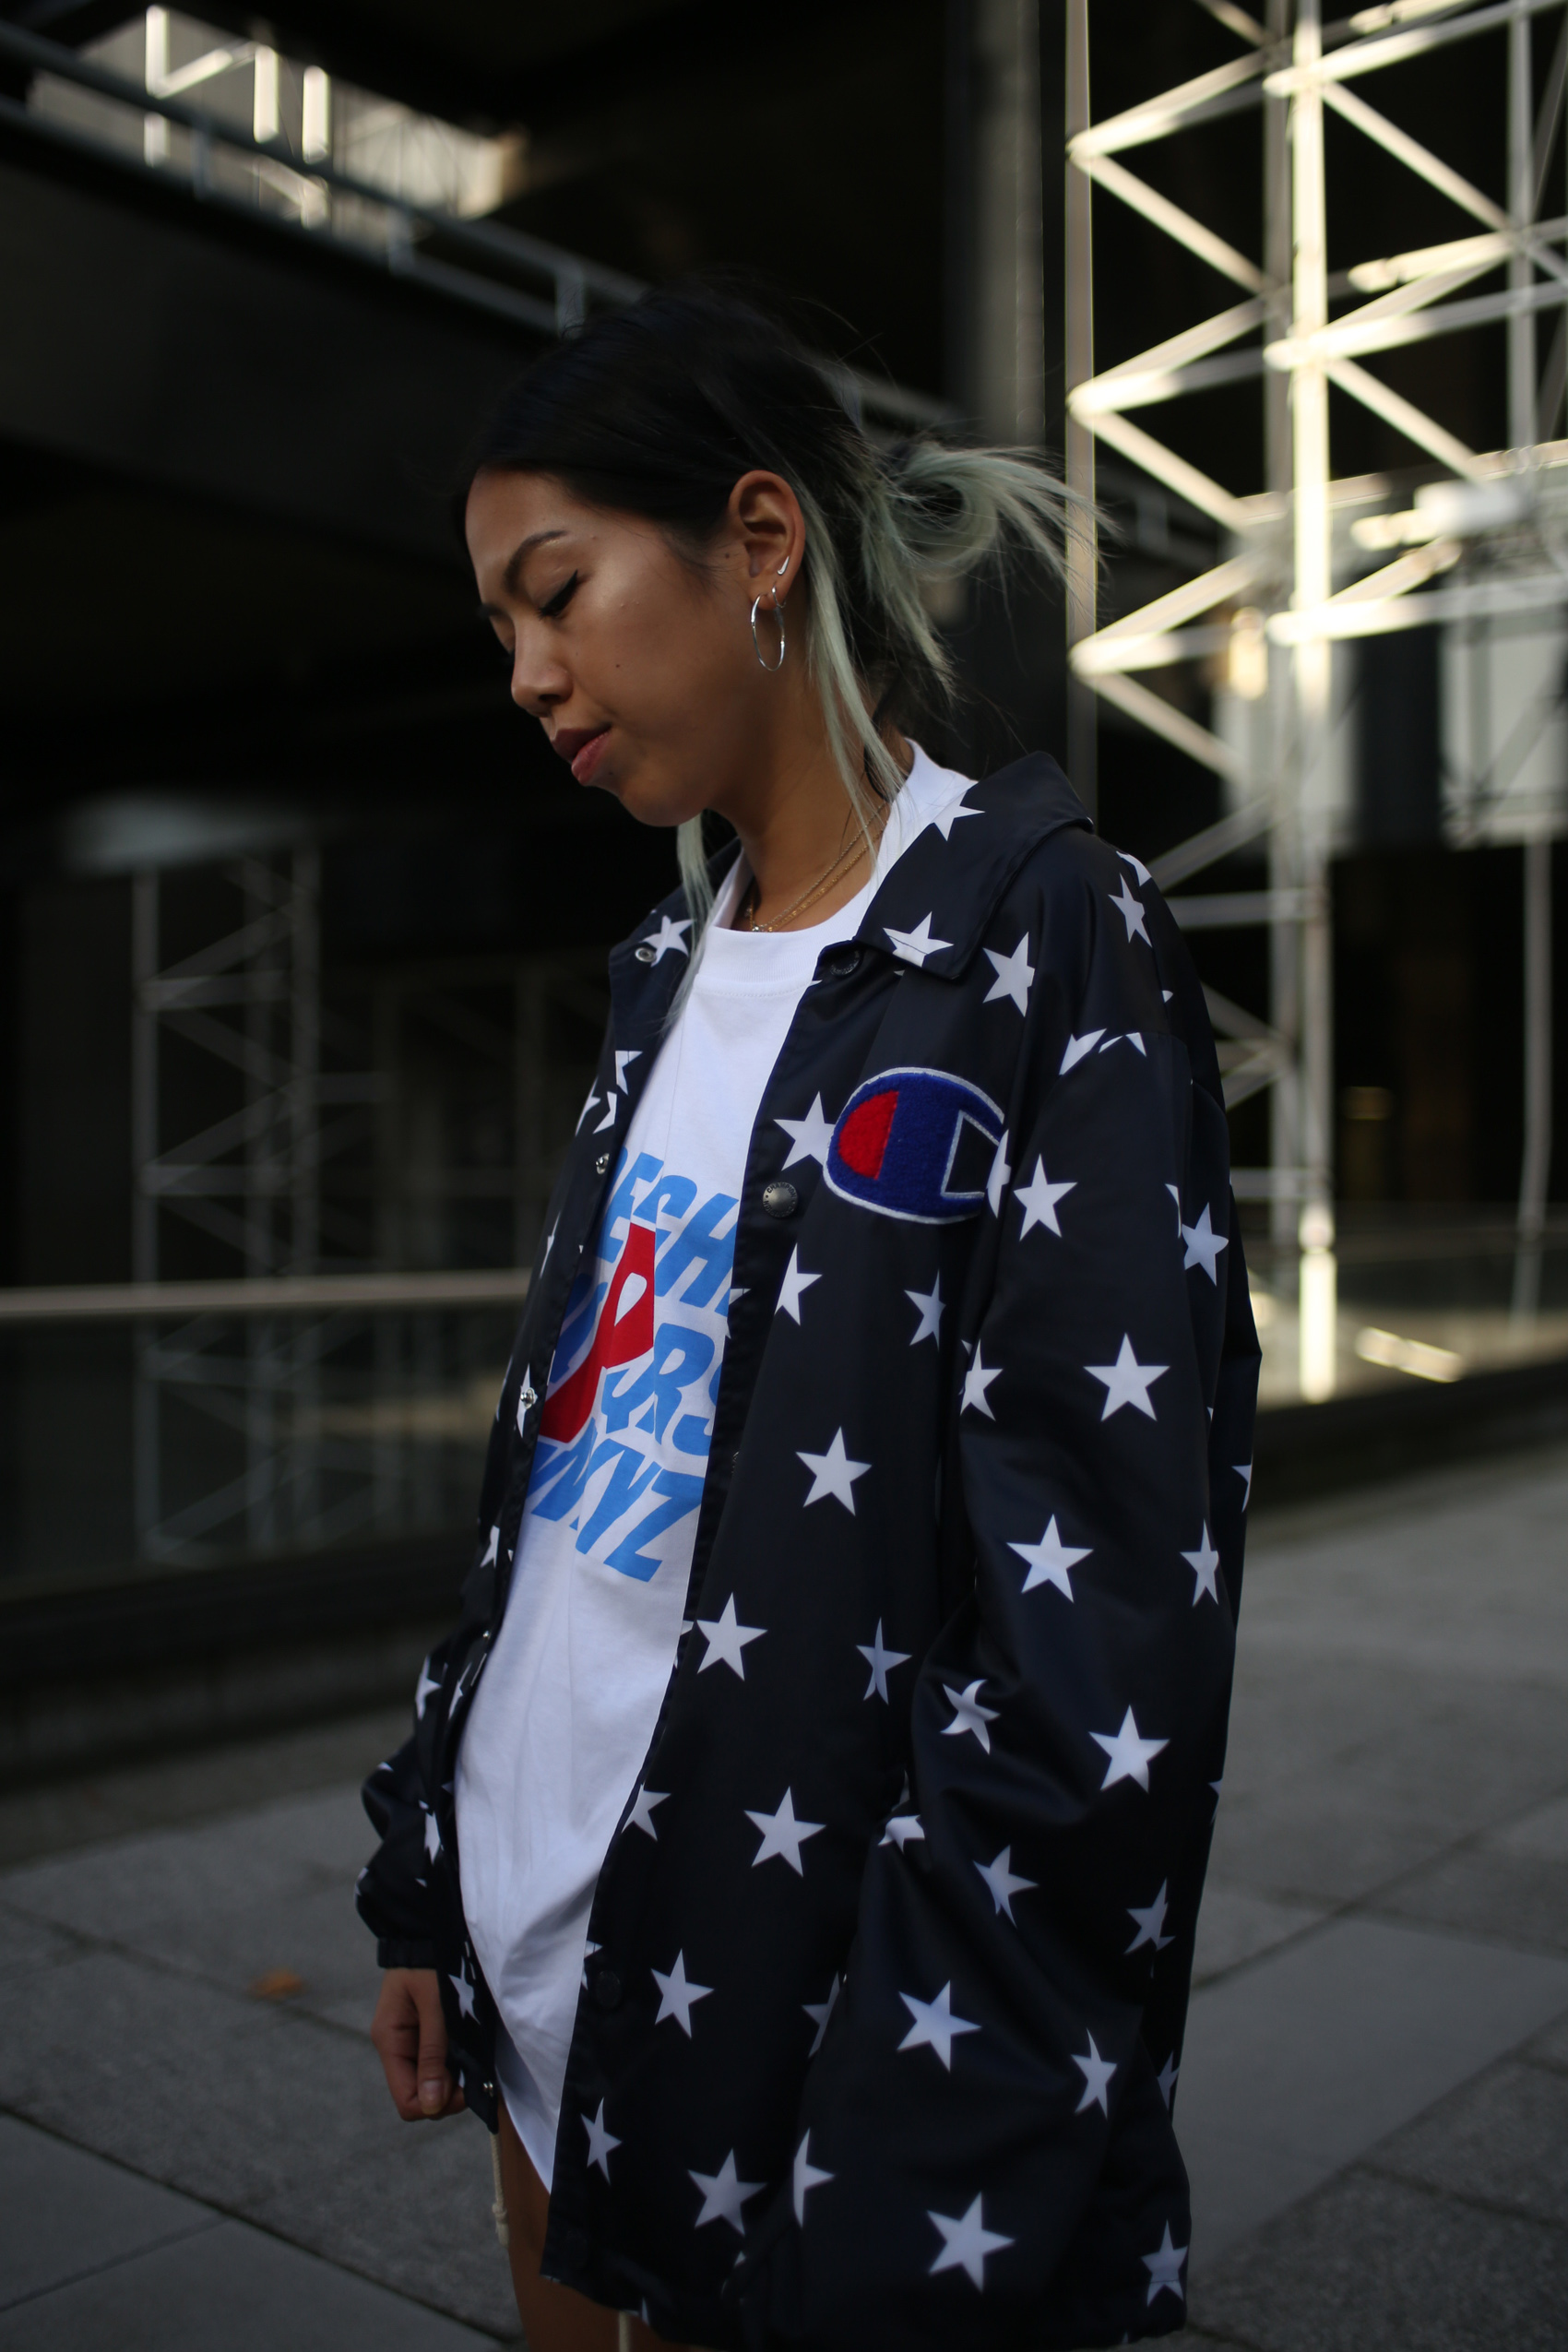 Champion coach jacket stars usa